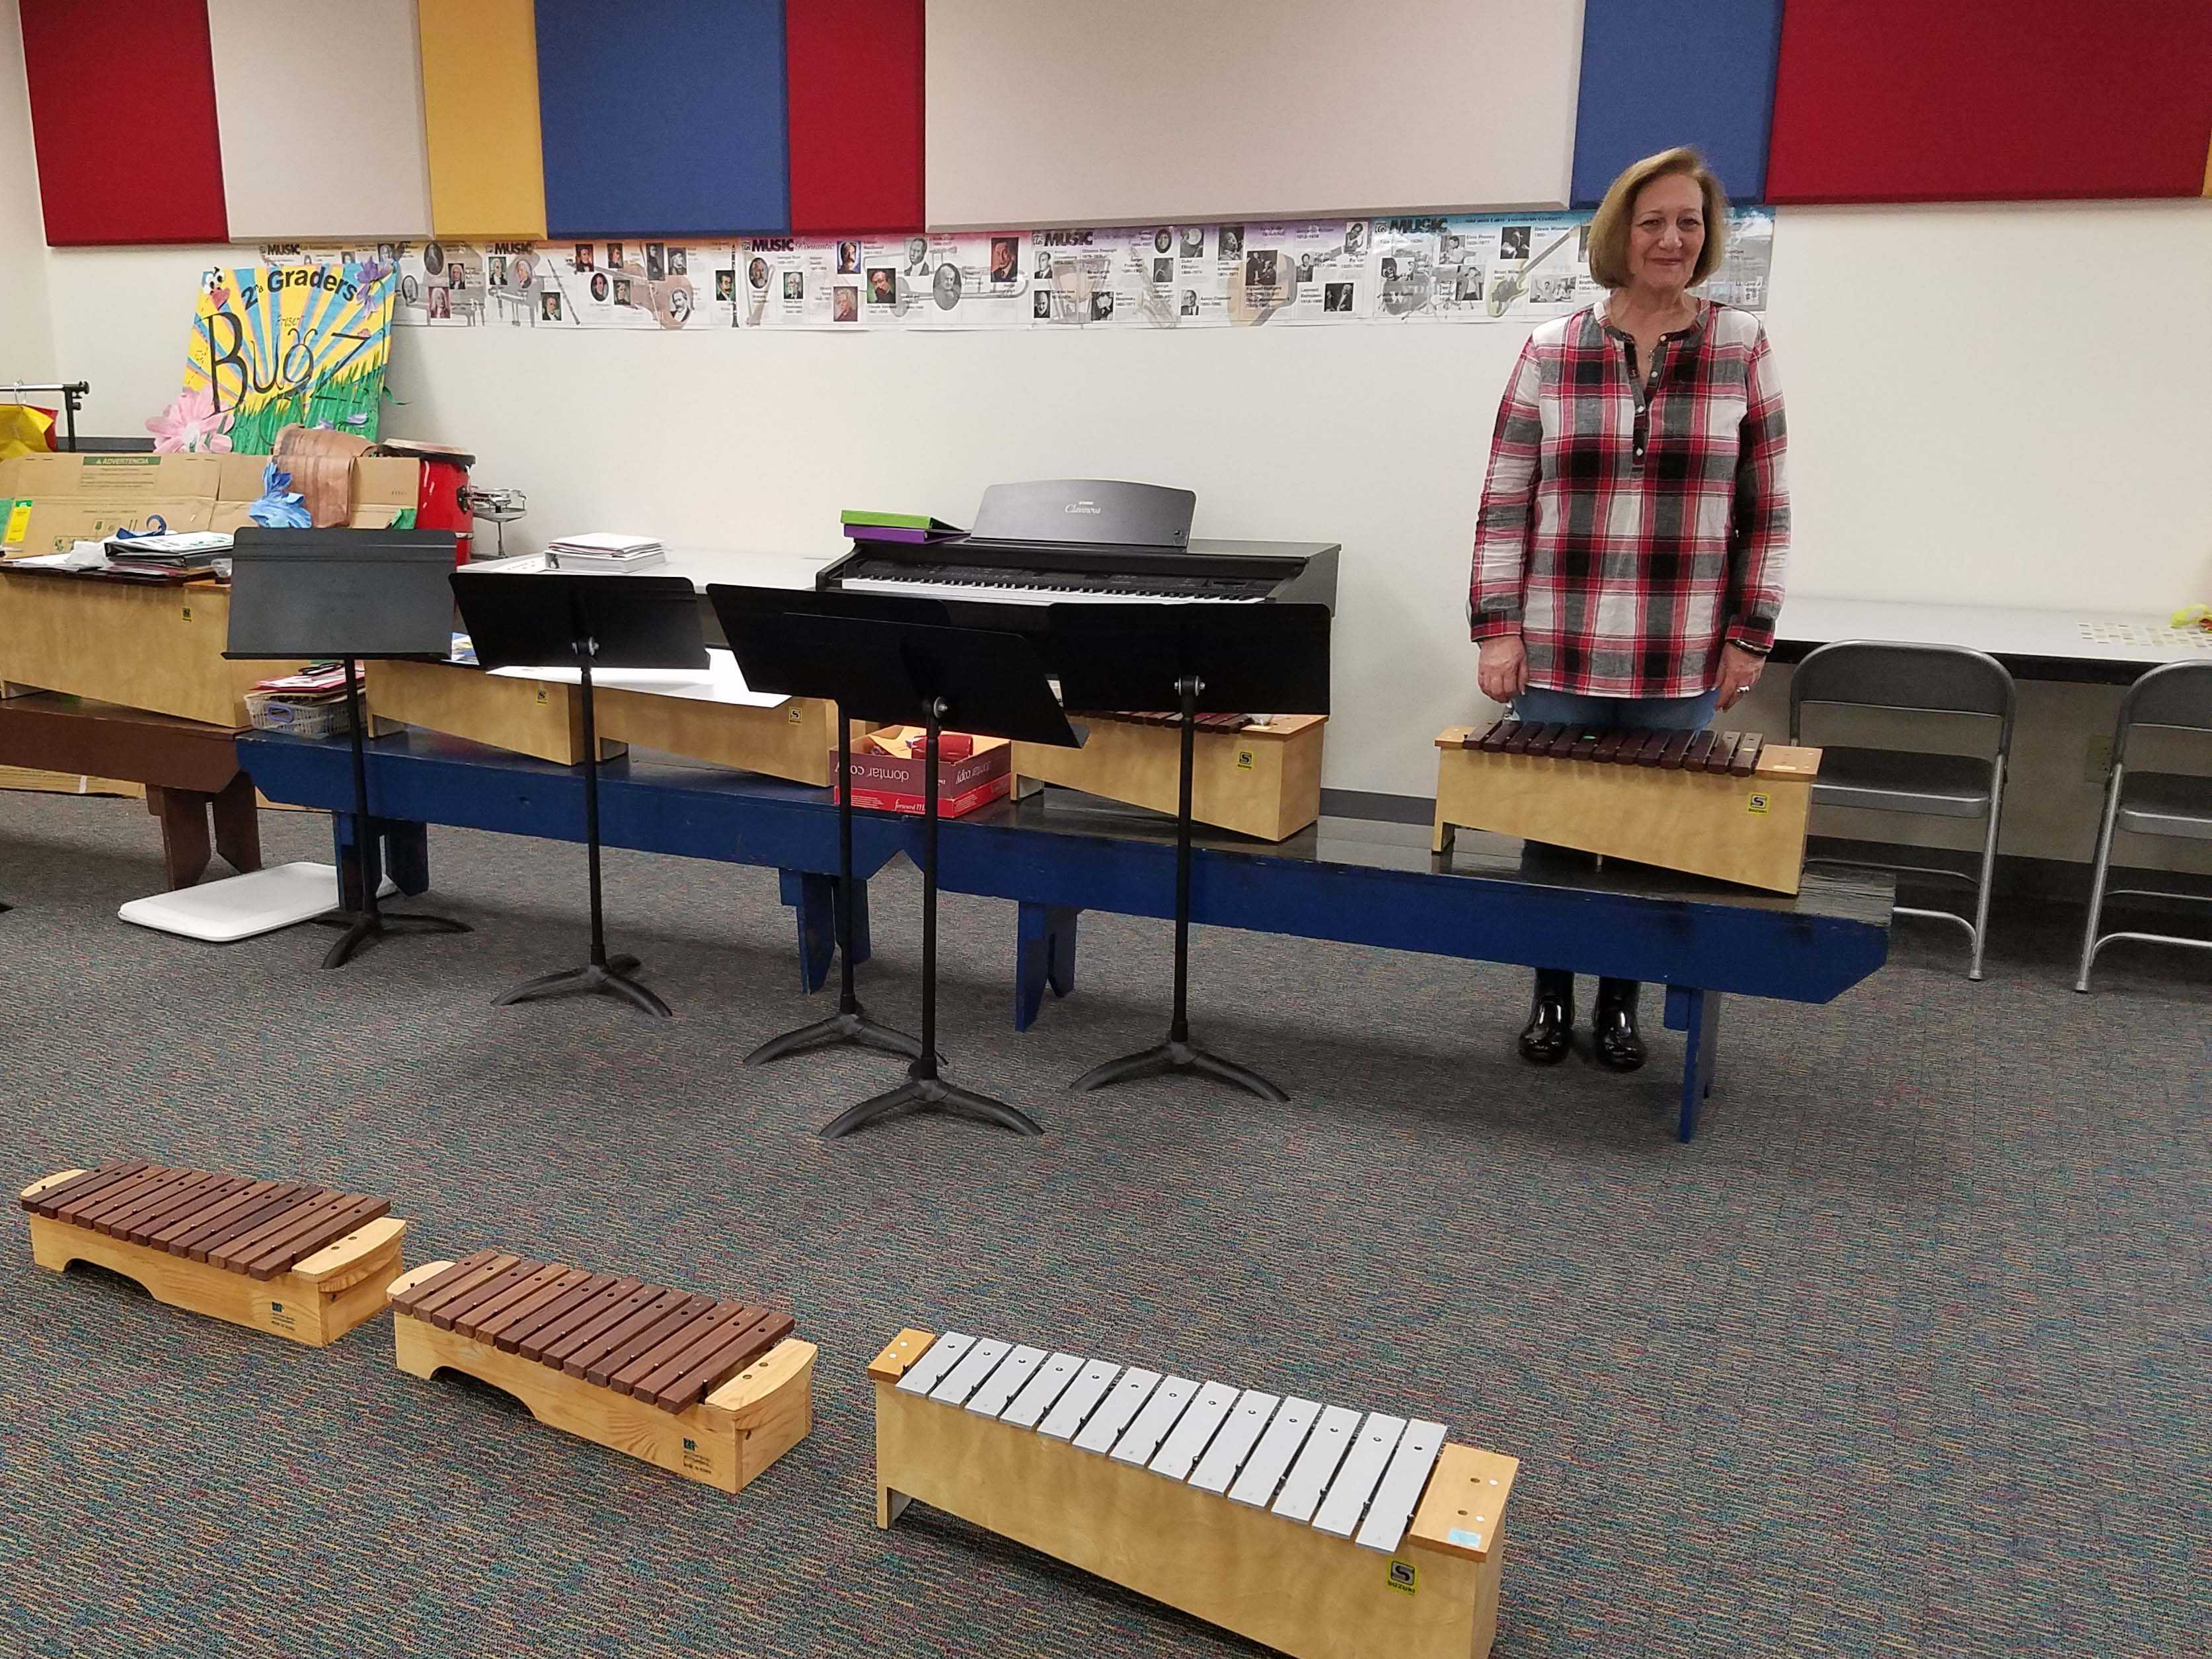 Retiring staff member Debbie Noble stands among some of the instruments she uses to instruct her students at Hart Elementary